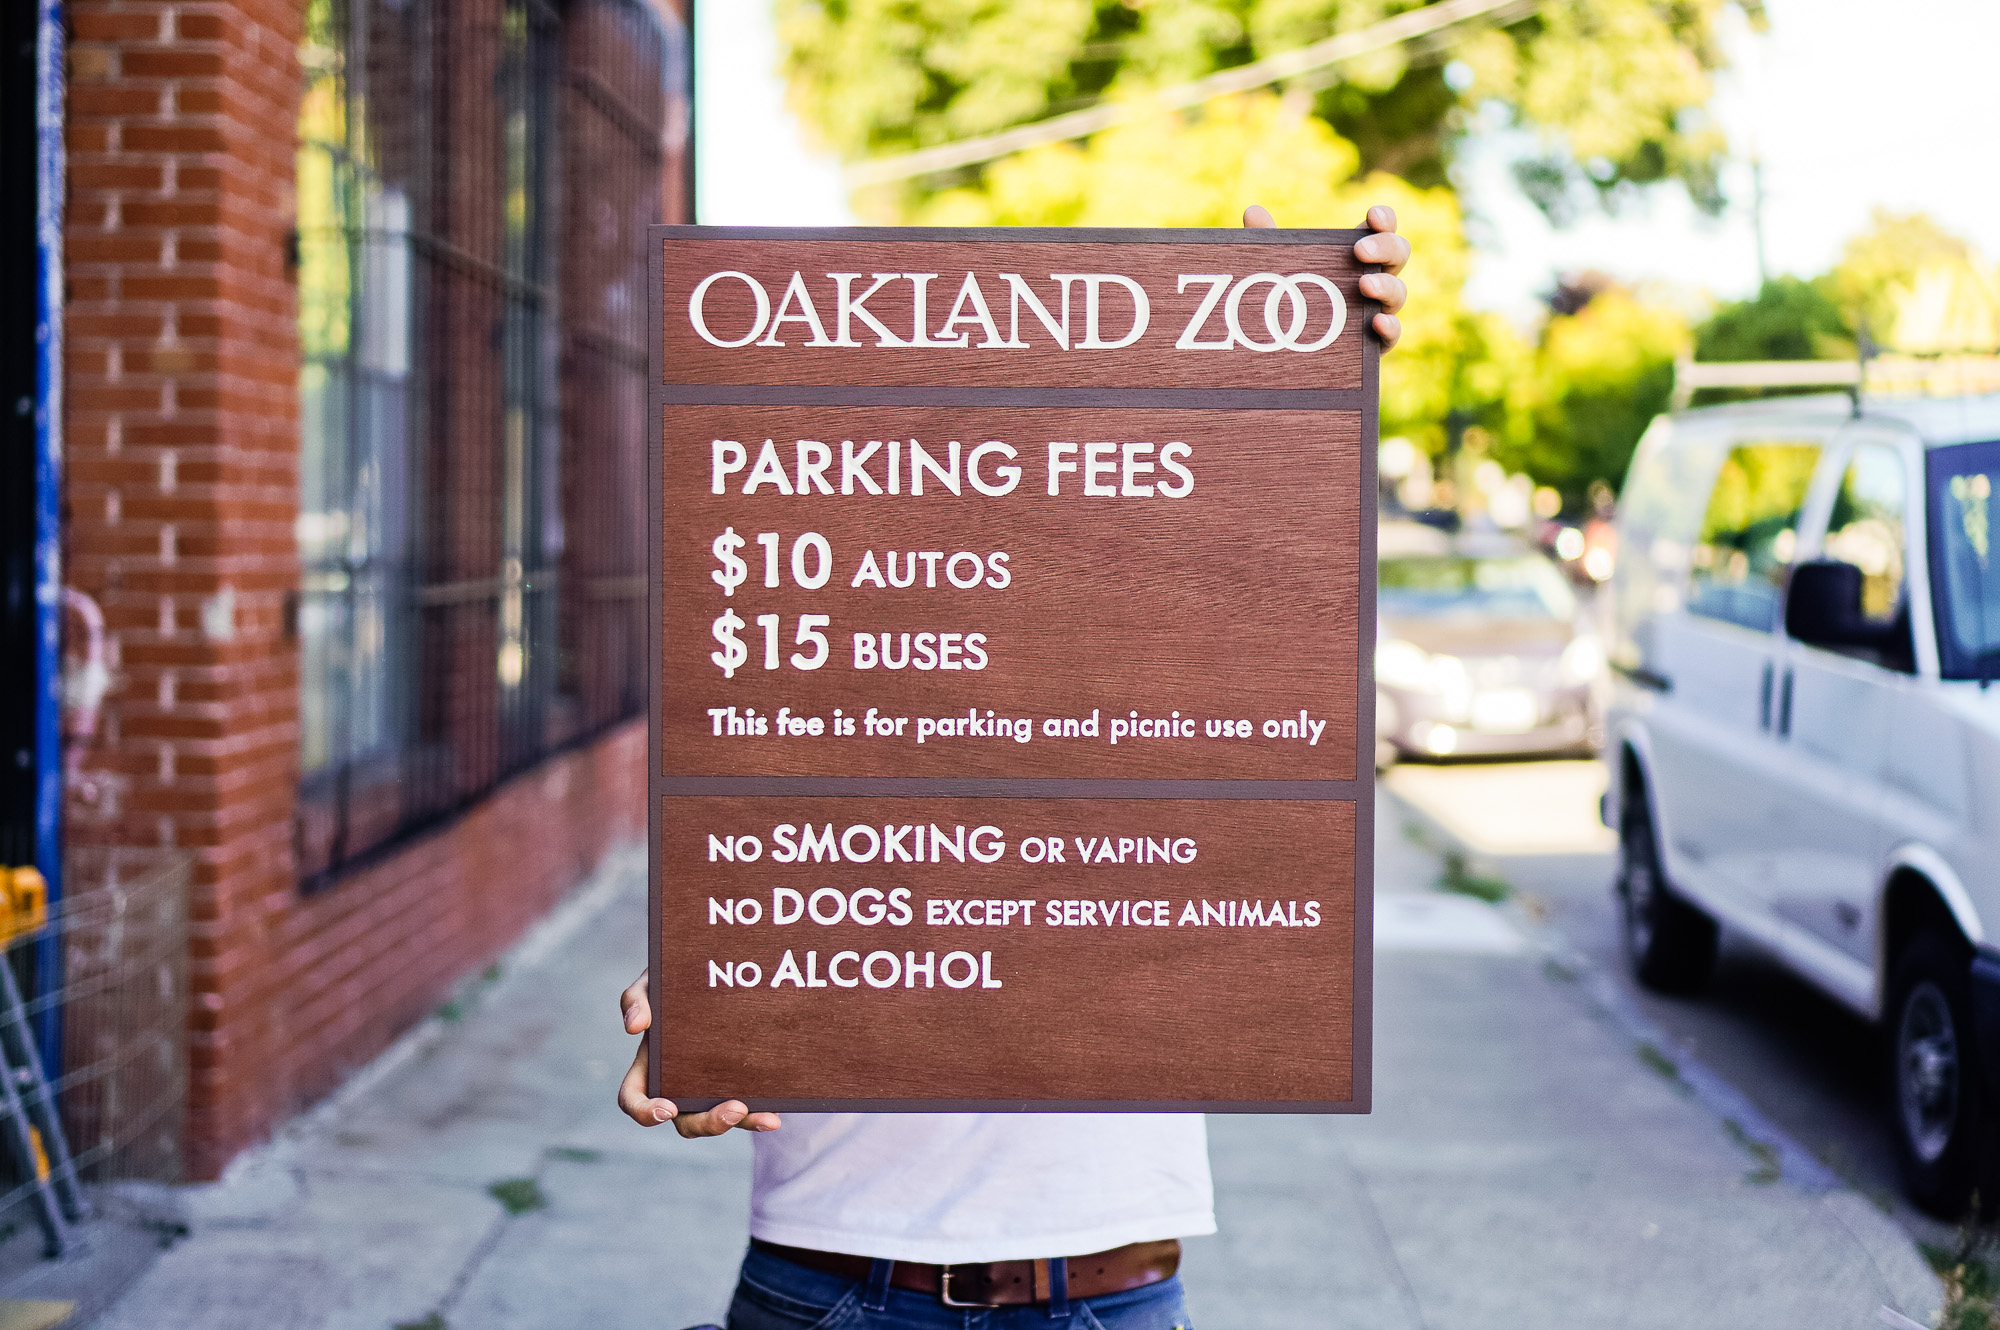 Oakland zoo outdoor national park style wood sign